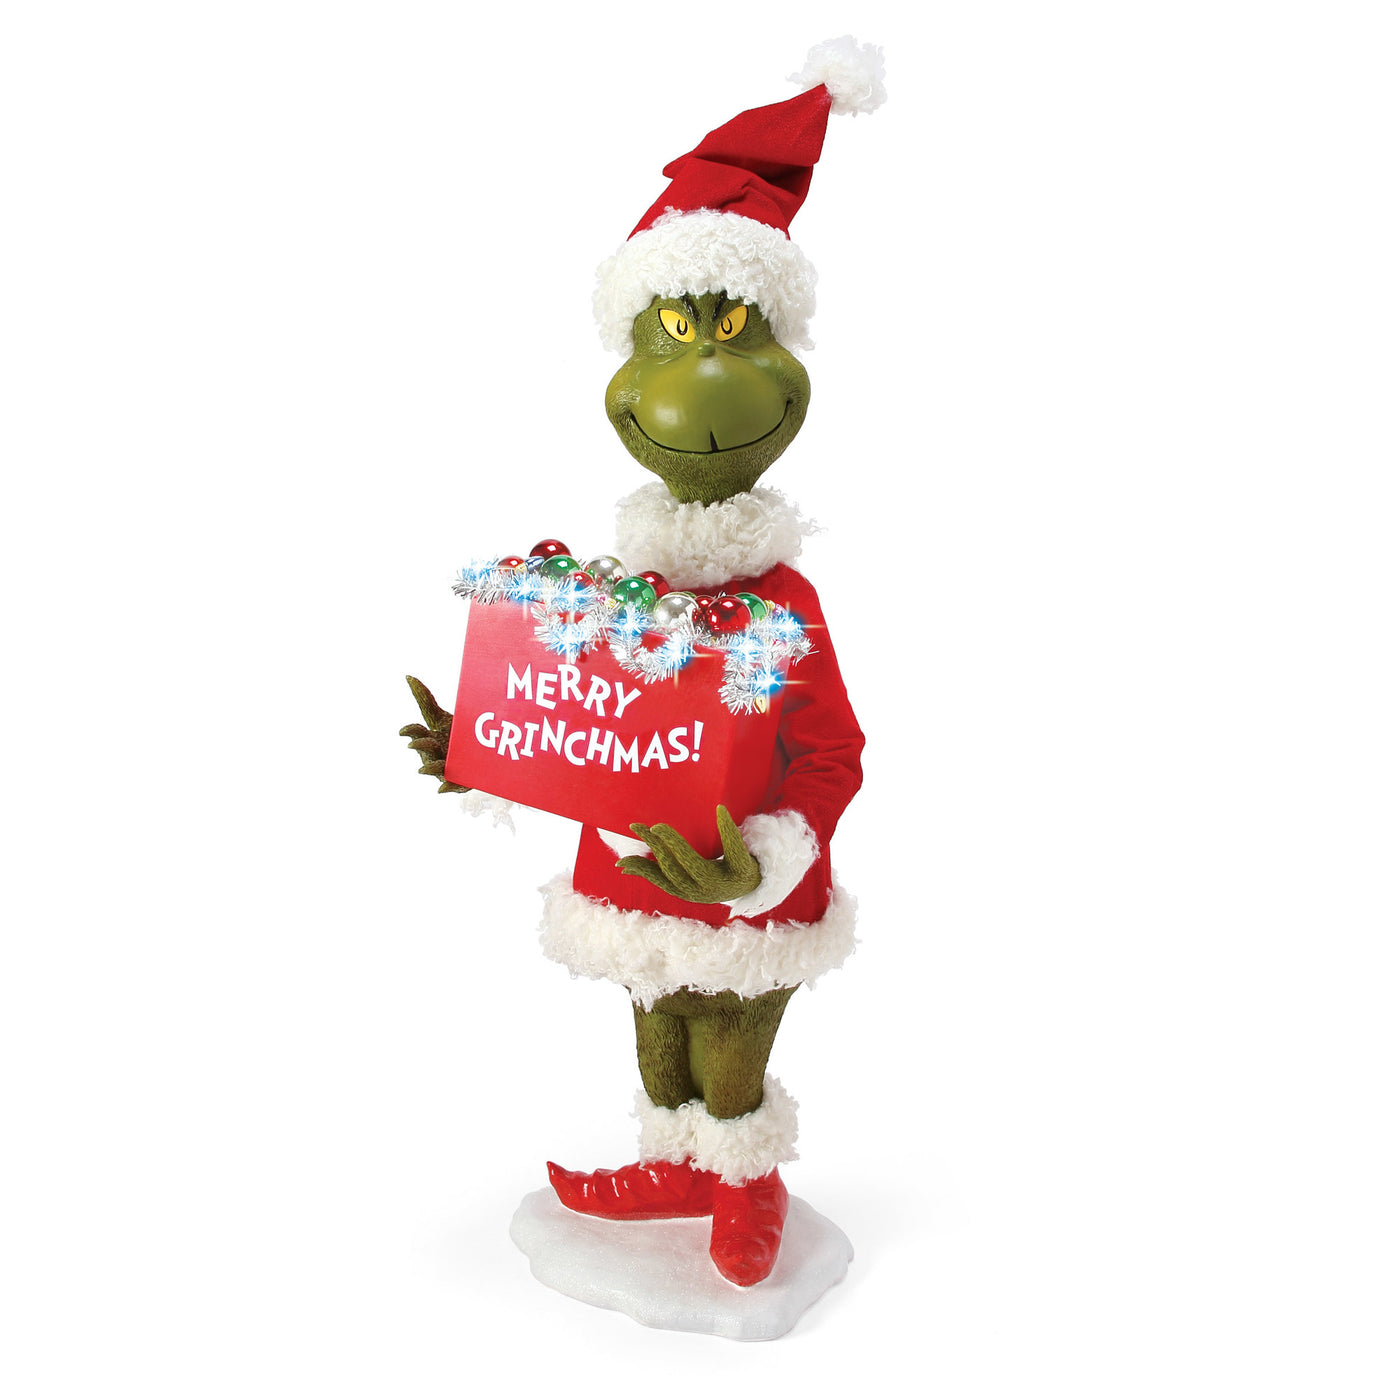 Jim Shore Grinch Statue Merry Grinchmas Figurine New With Box I Love Characters